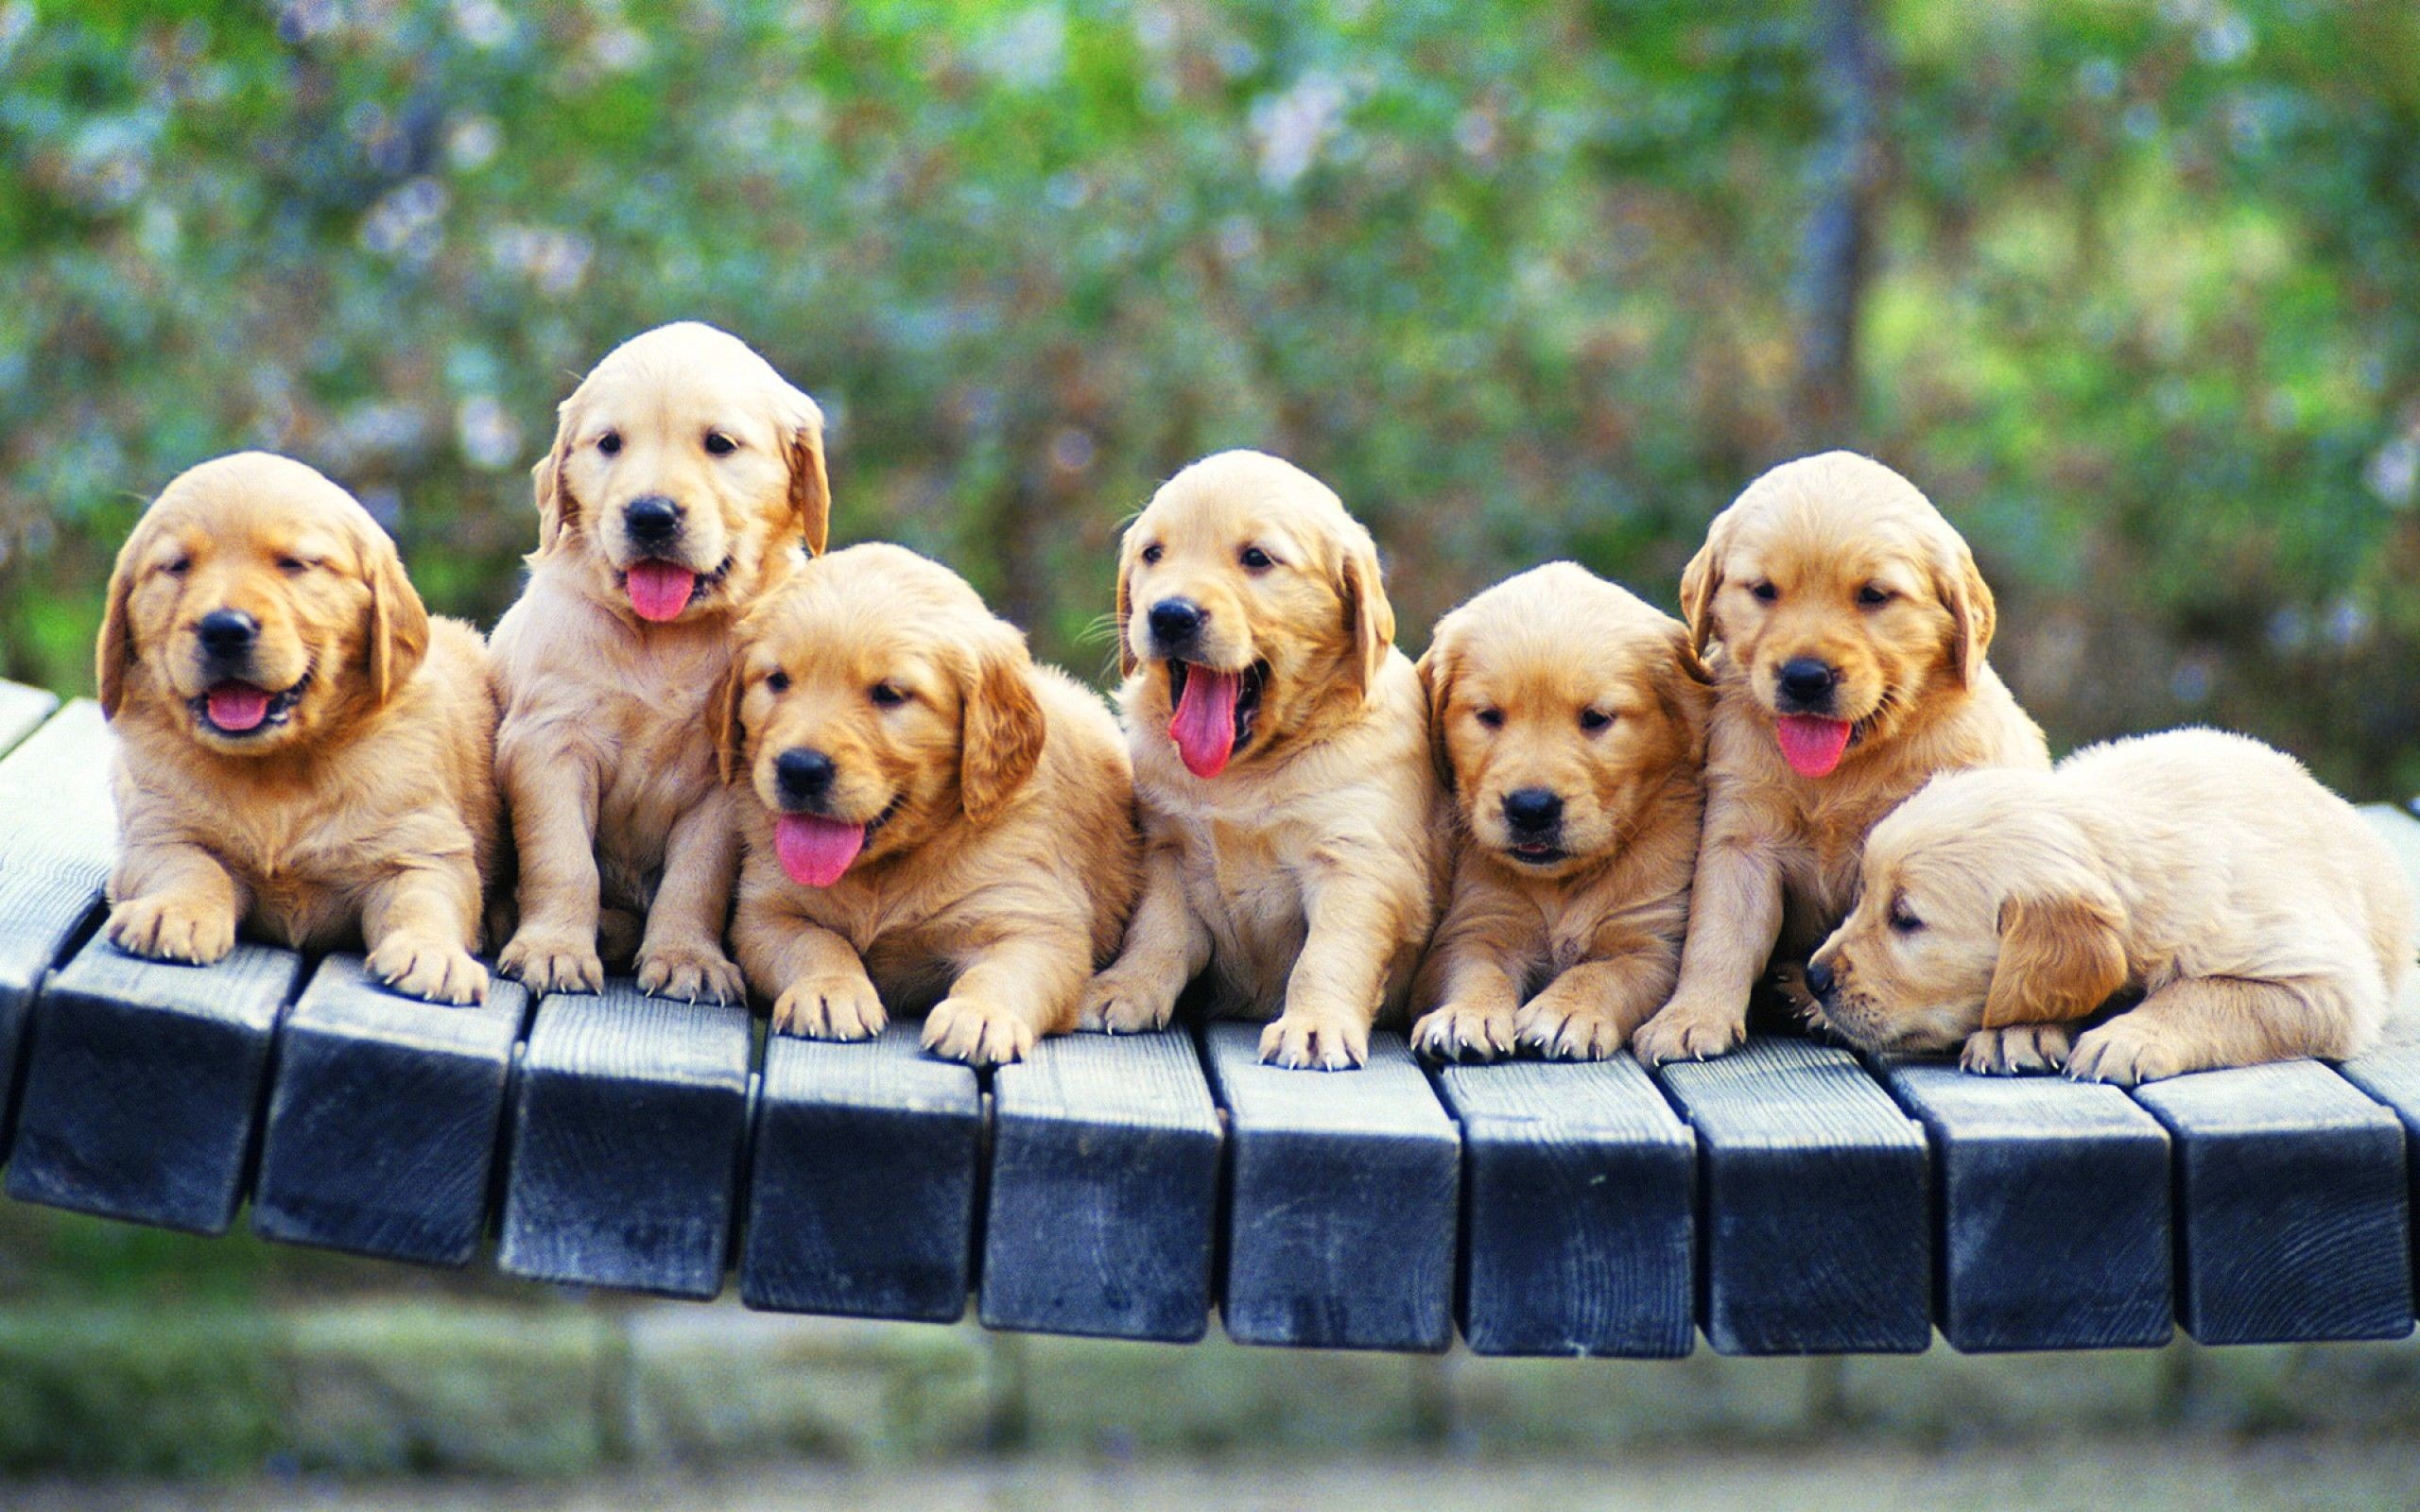 1920x1080 Wallpaper For IPhone Dogs New Puppy Best Cute Puppies Hd Wallpapers